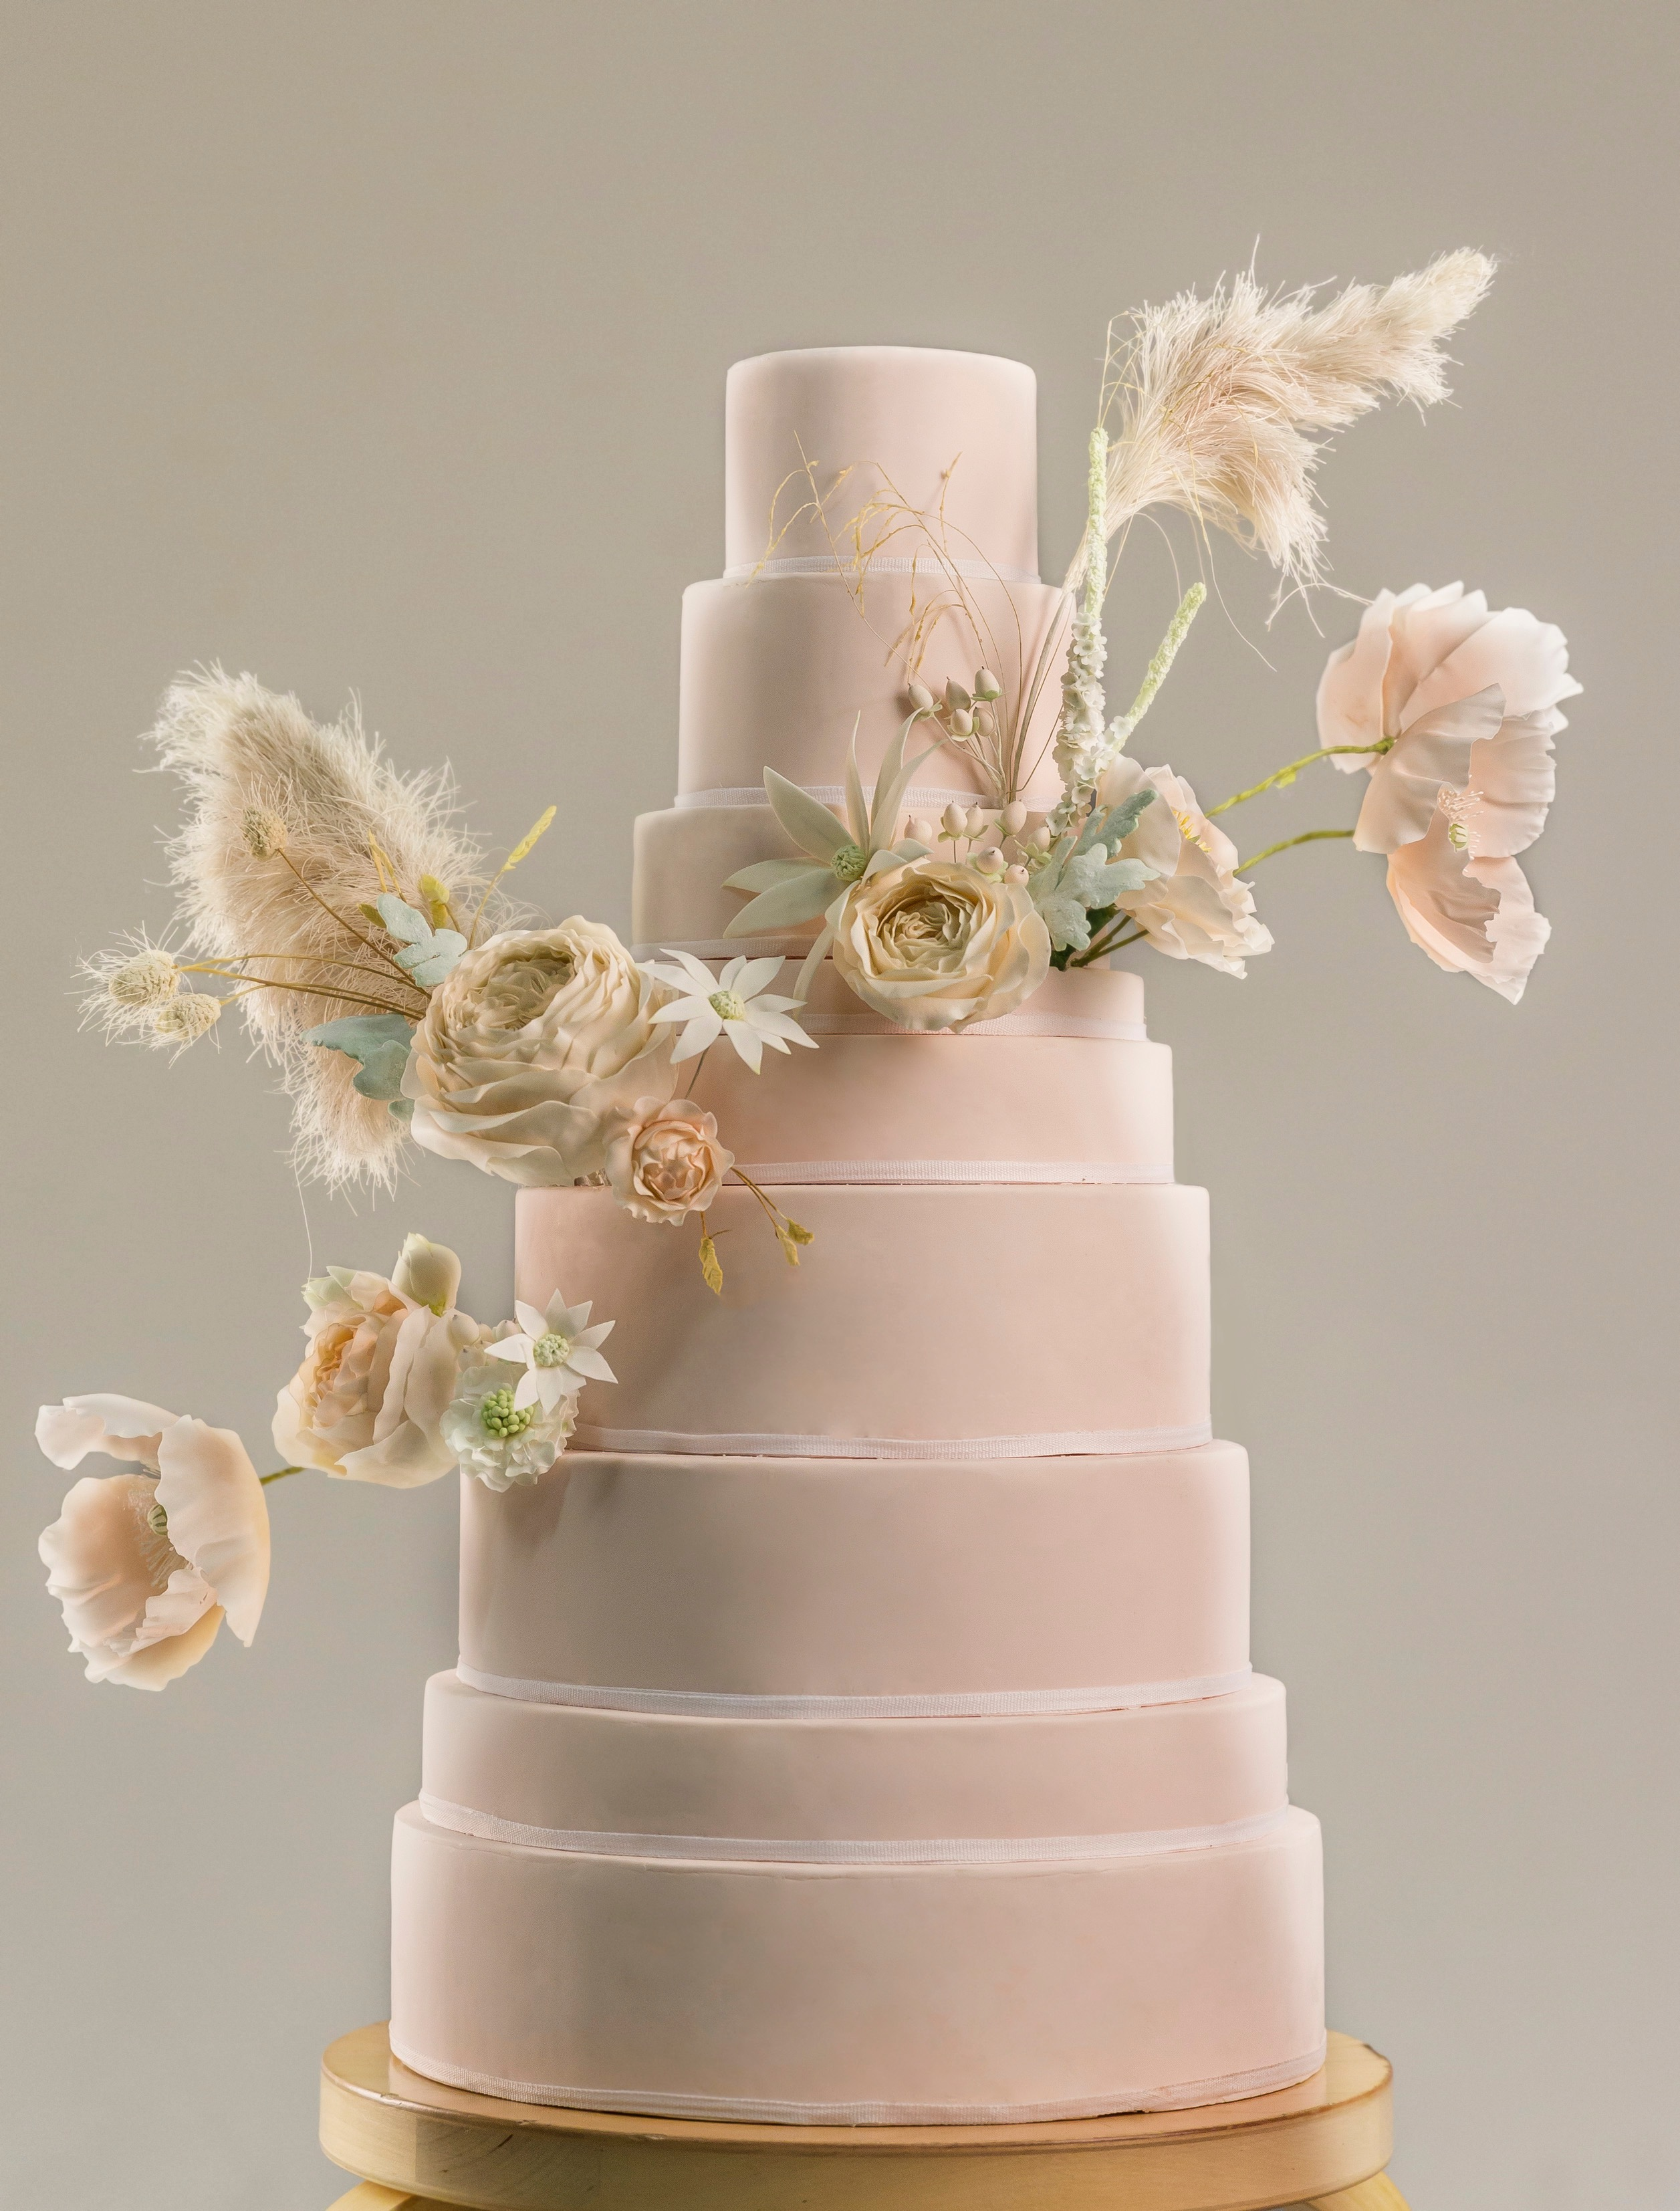 Pink wedding cake with dusty pink sugar roses